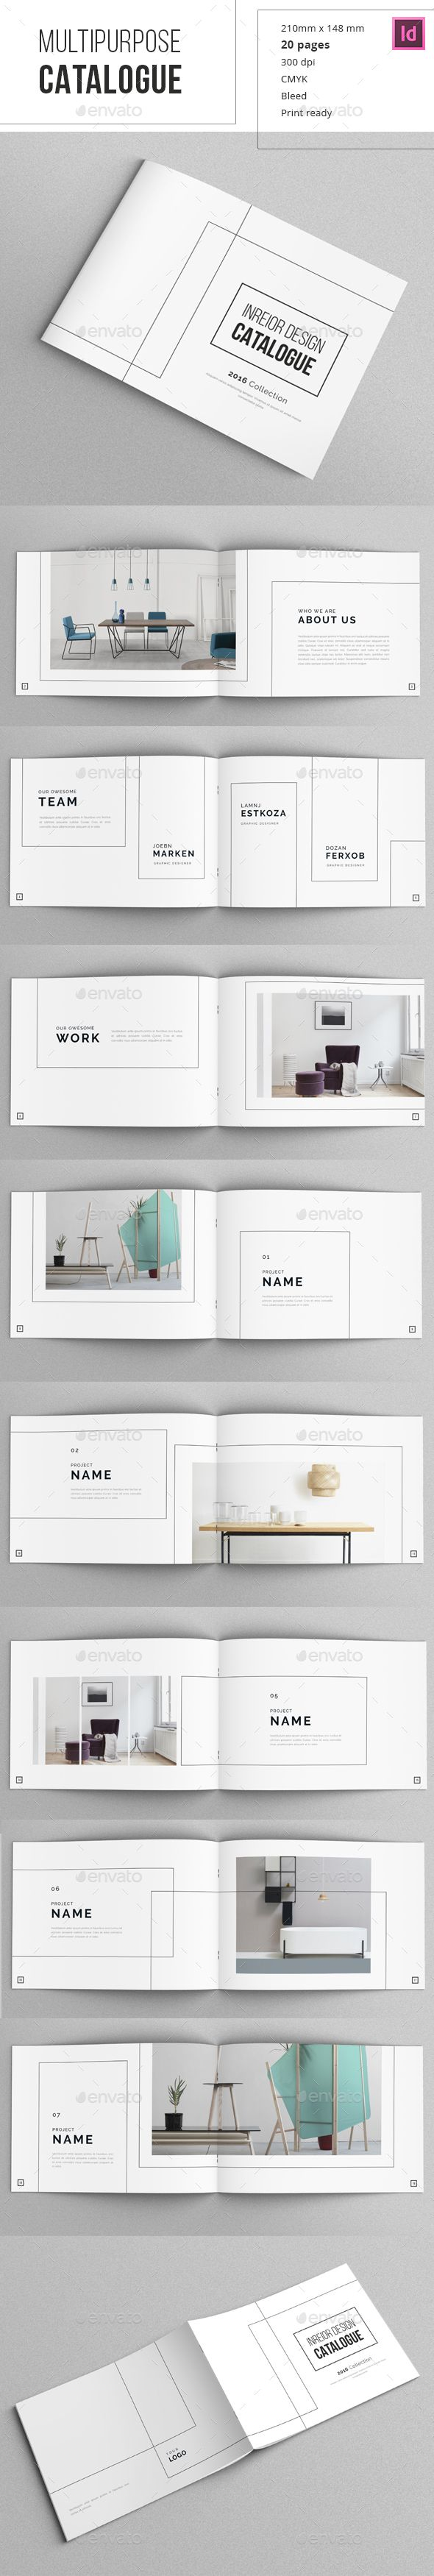 Minimal Indesign Catalogue | Portafolio, Catálogo y Diseño editorial